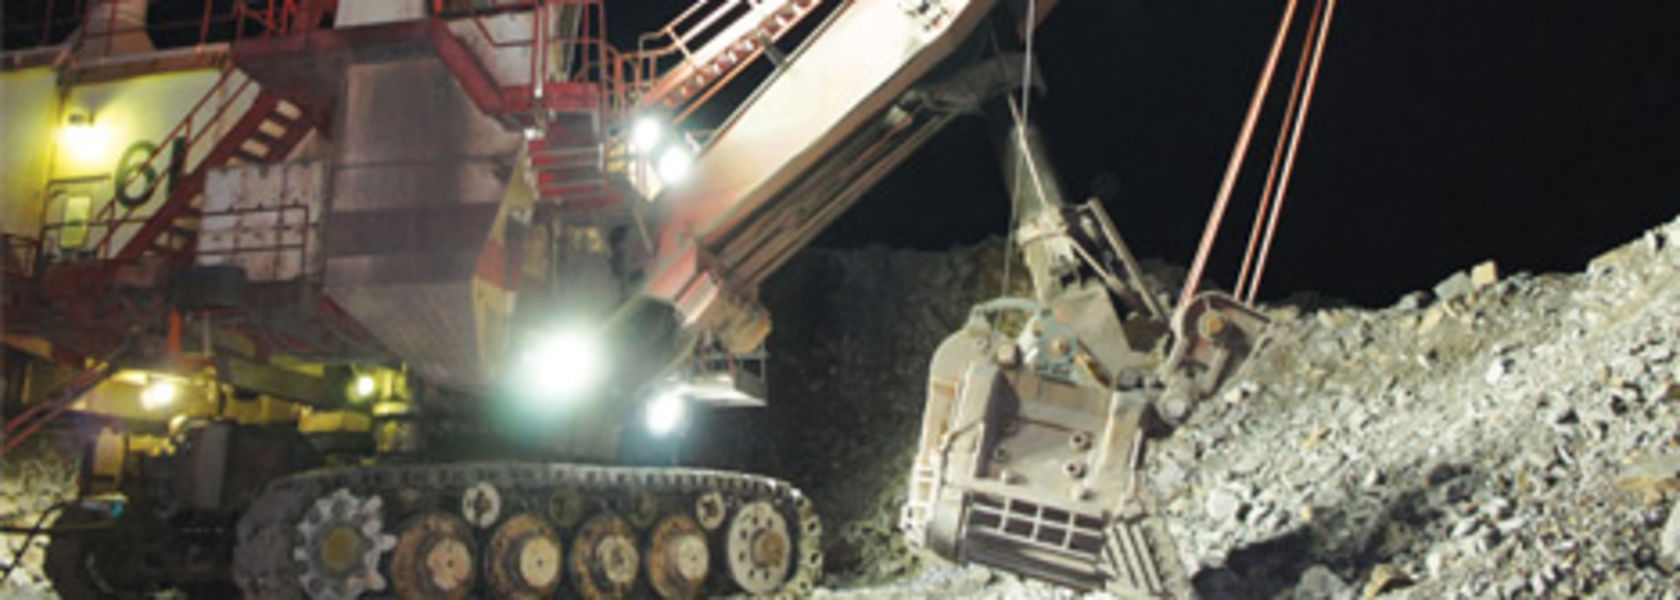 tame costs with led lighting mining magazine